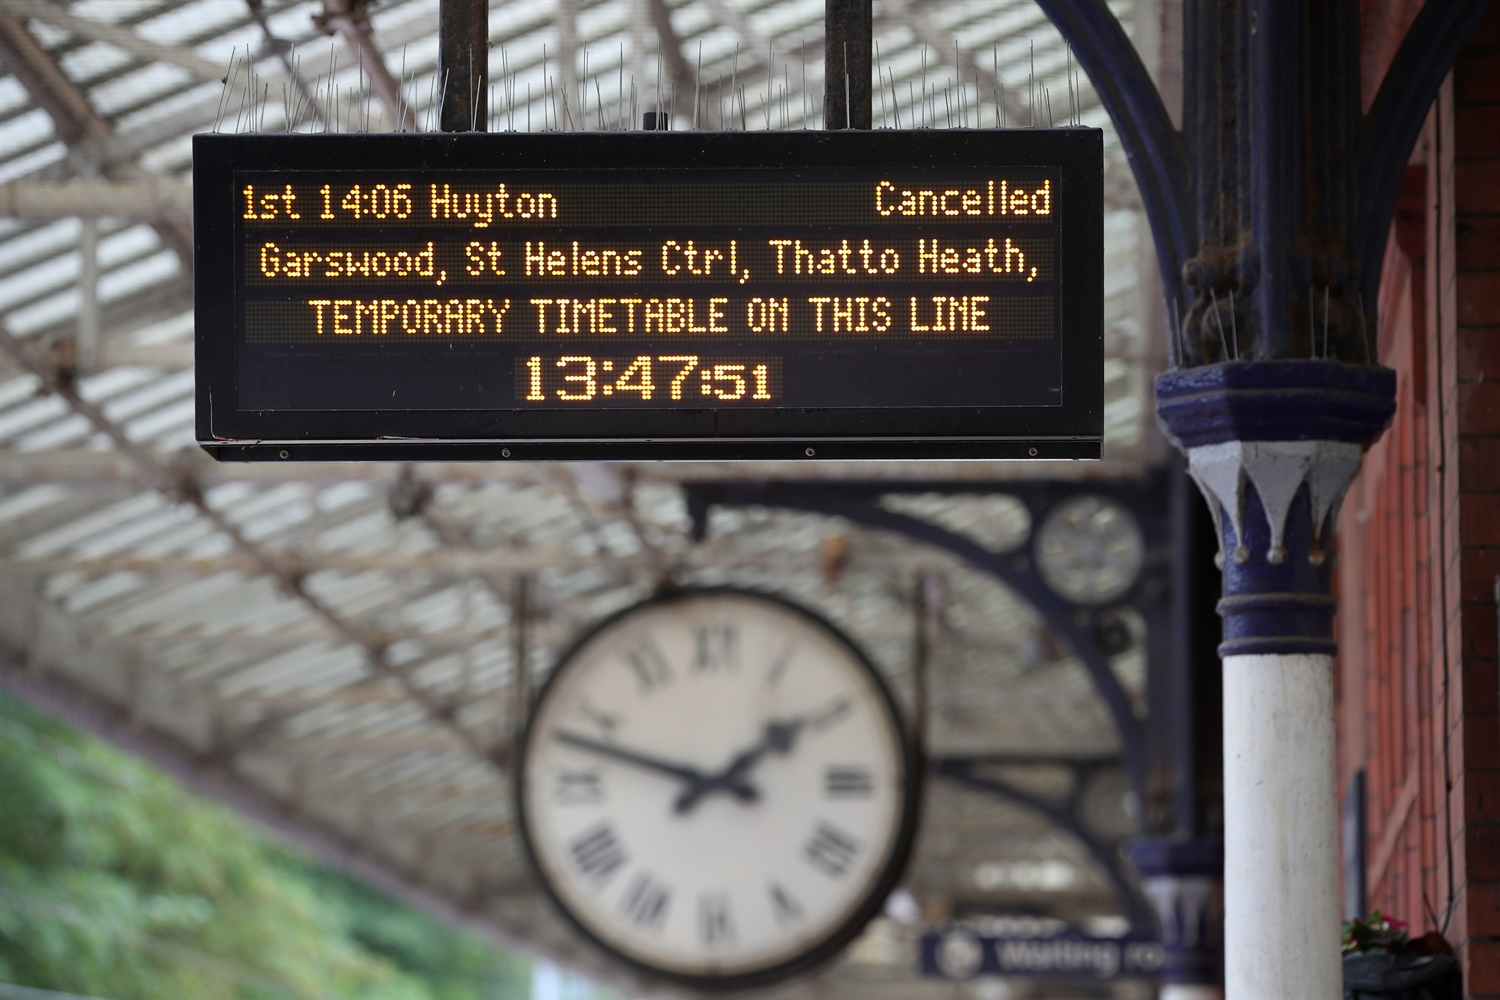 'Still too many' delays and cancellations, despite interim Northern timetable